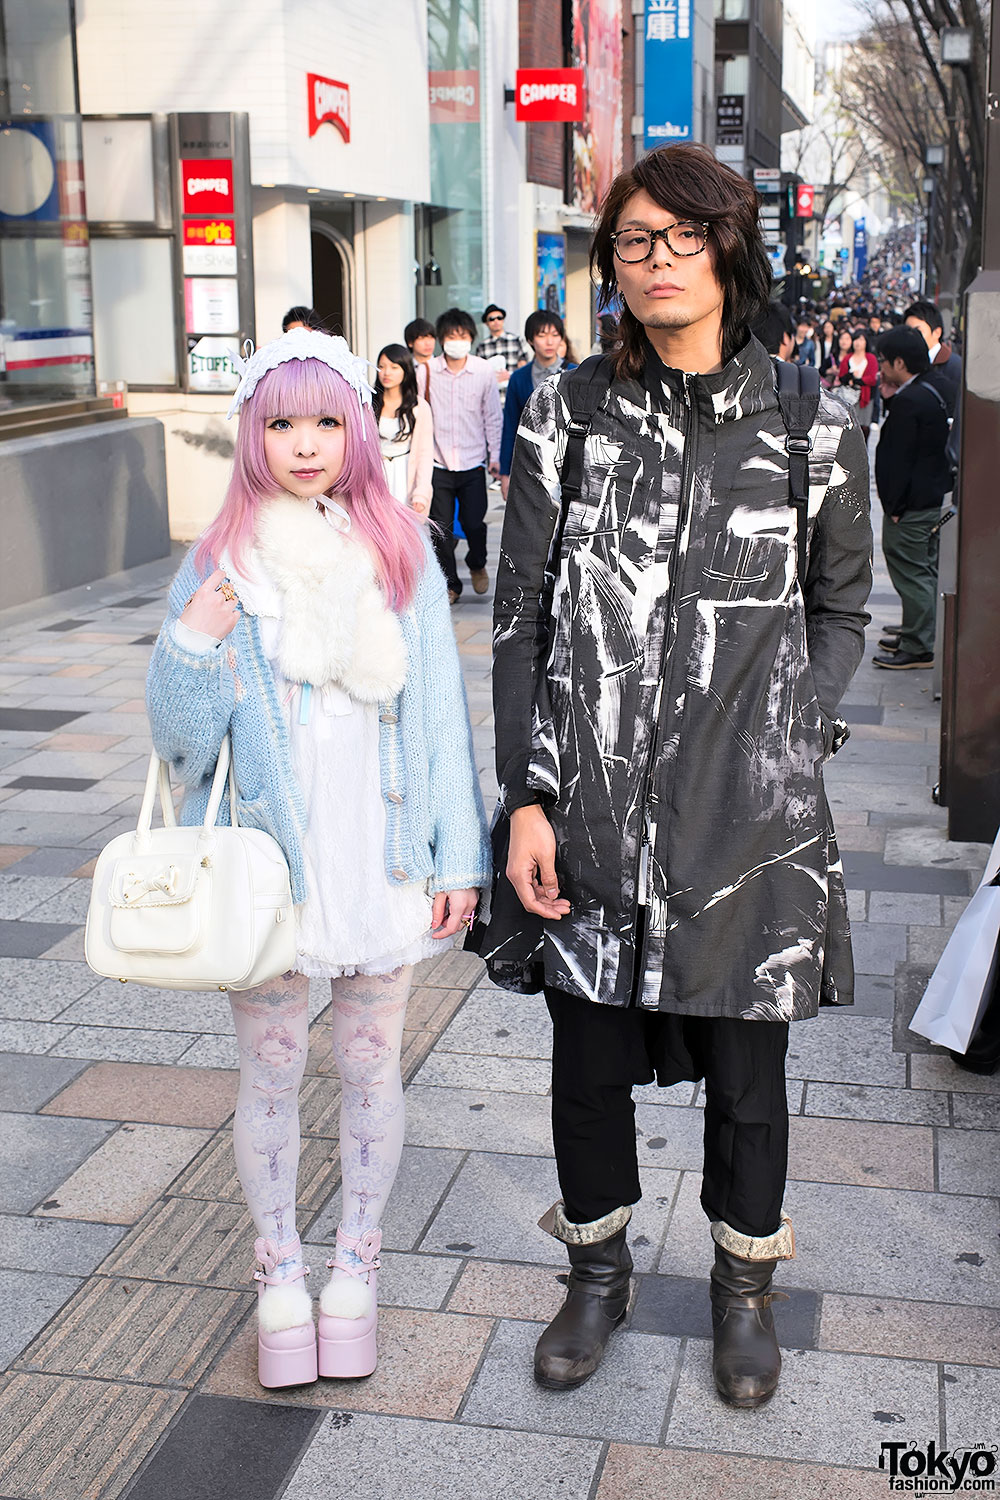 Kawaii vs Cool Fashion in Harajuku